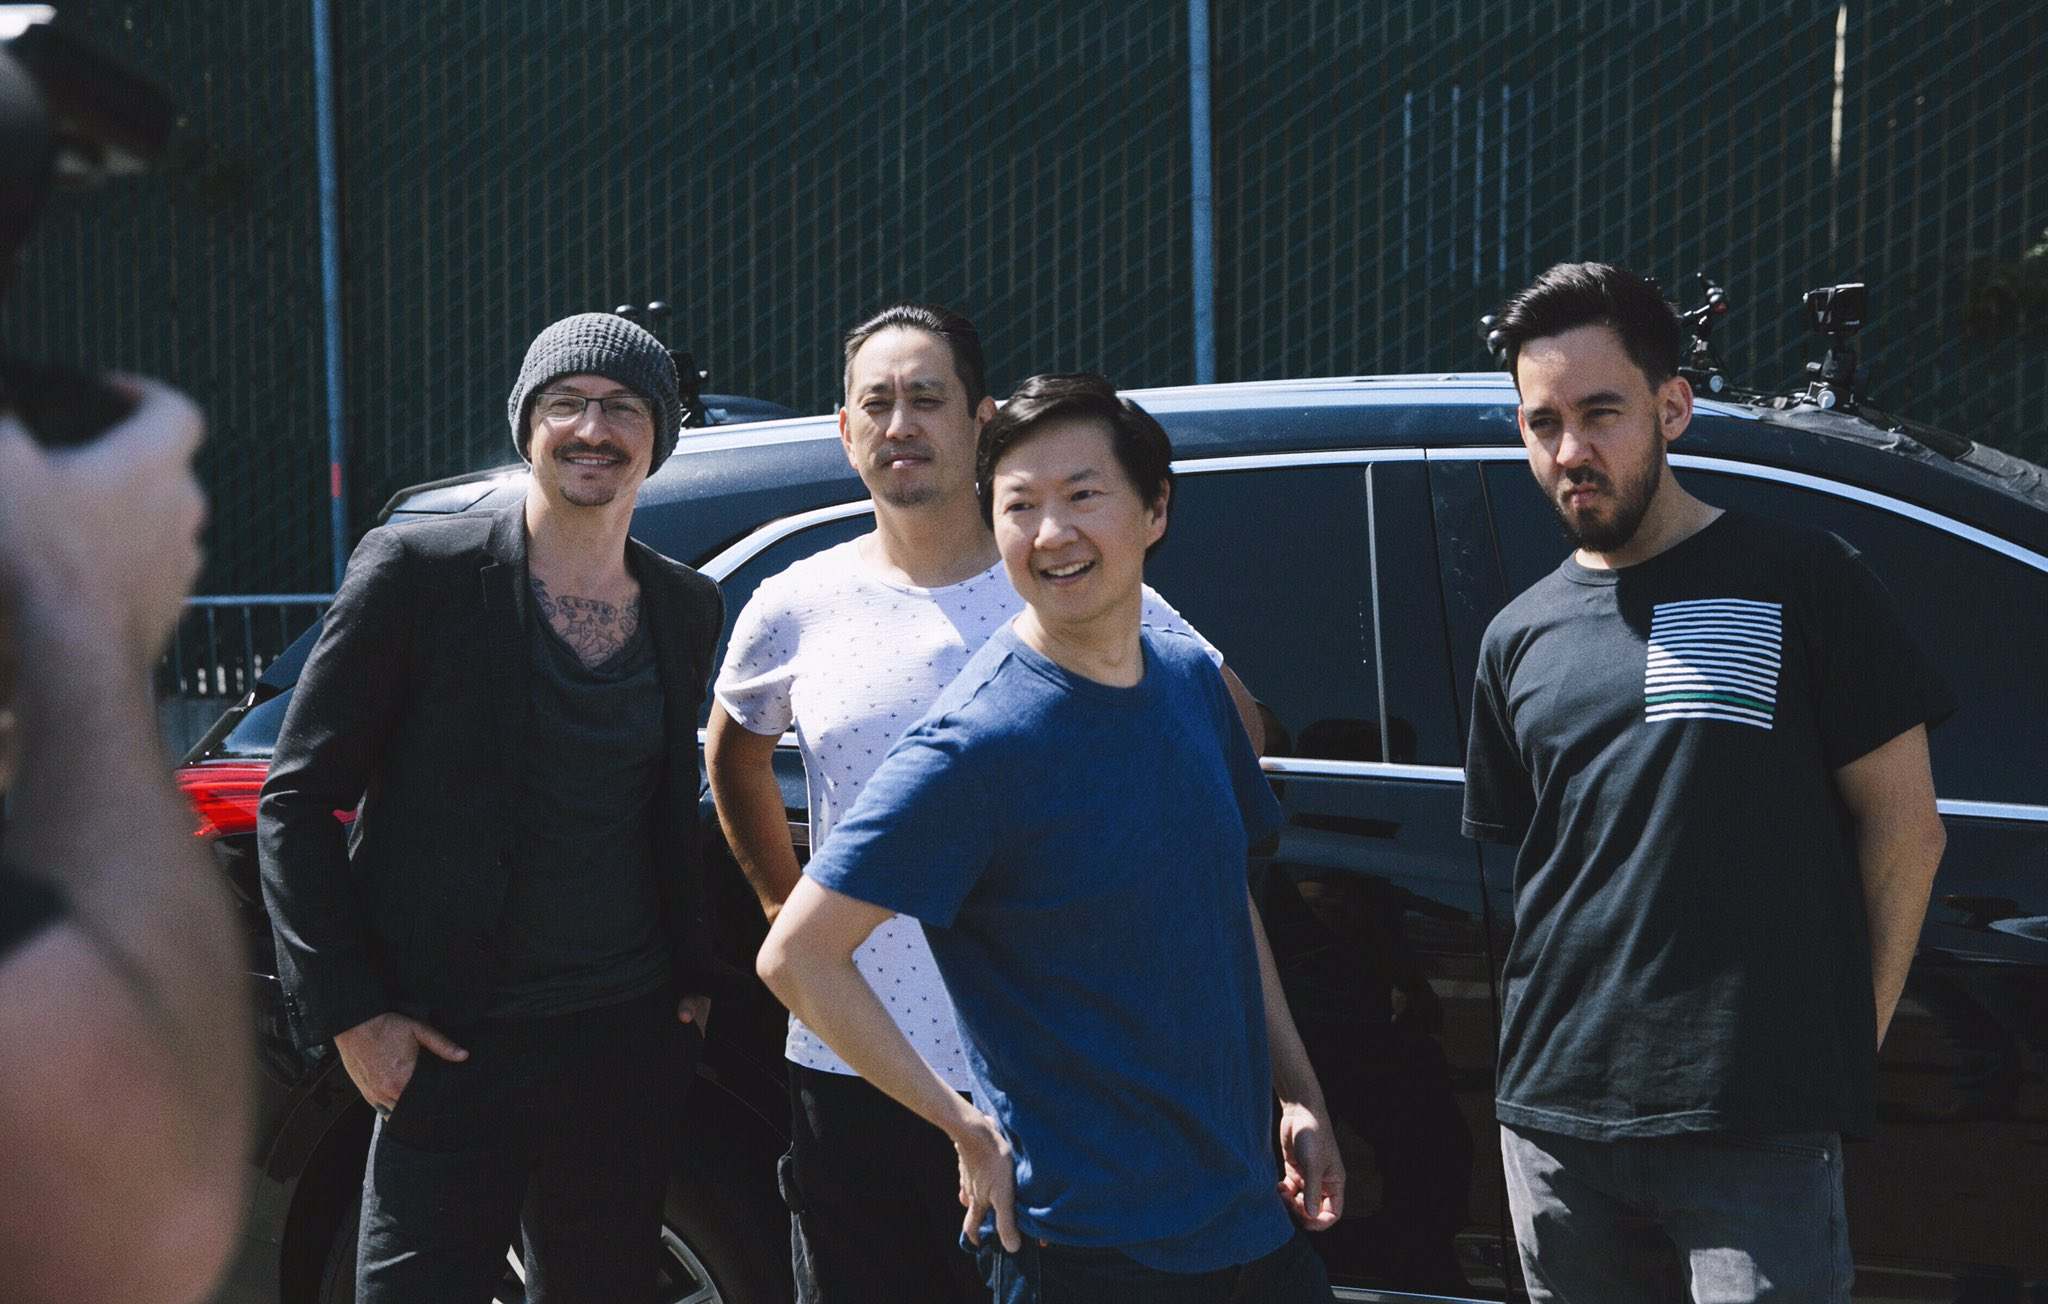 Fun day with @kenjeong @CarpoolKaraoke @AppleMusic - stay tuned. https://t.co/v8tSBG1cwF